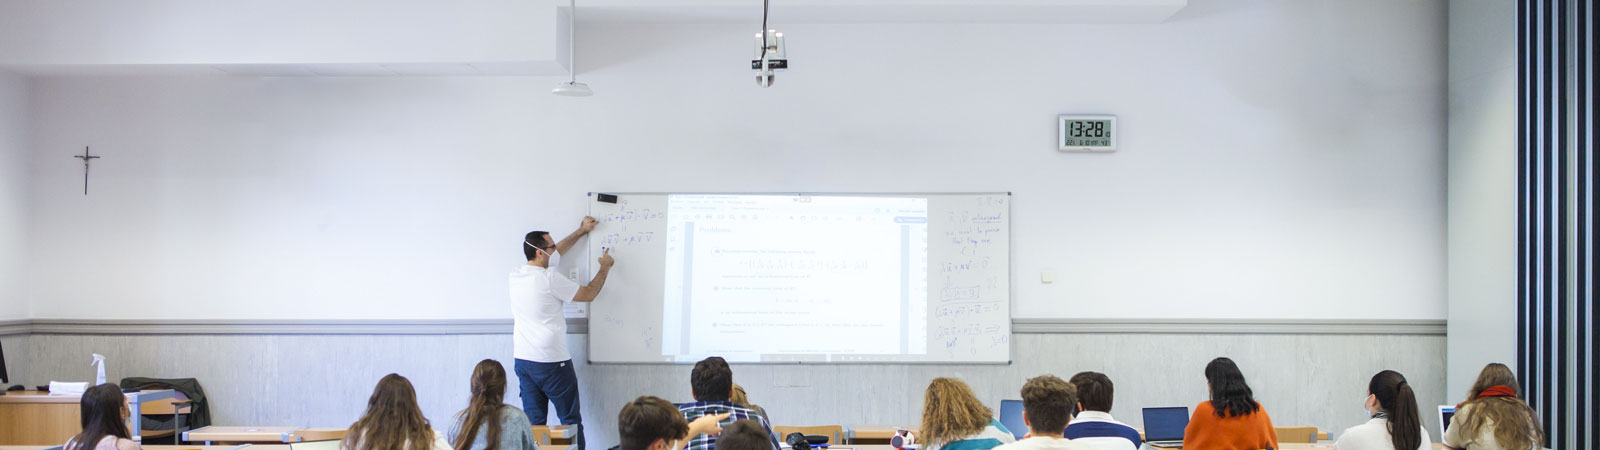 A teacher is presenting in front of a socially-distanced classroom. The Beamforming Microphone and PTZ camera is visible, suspended from the ceiling.